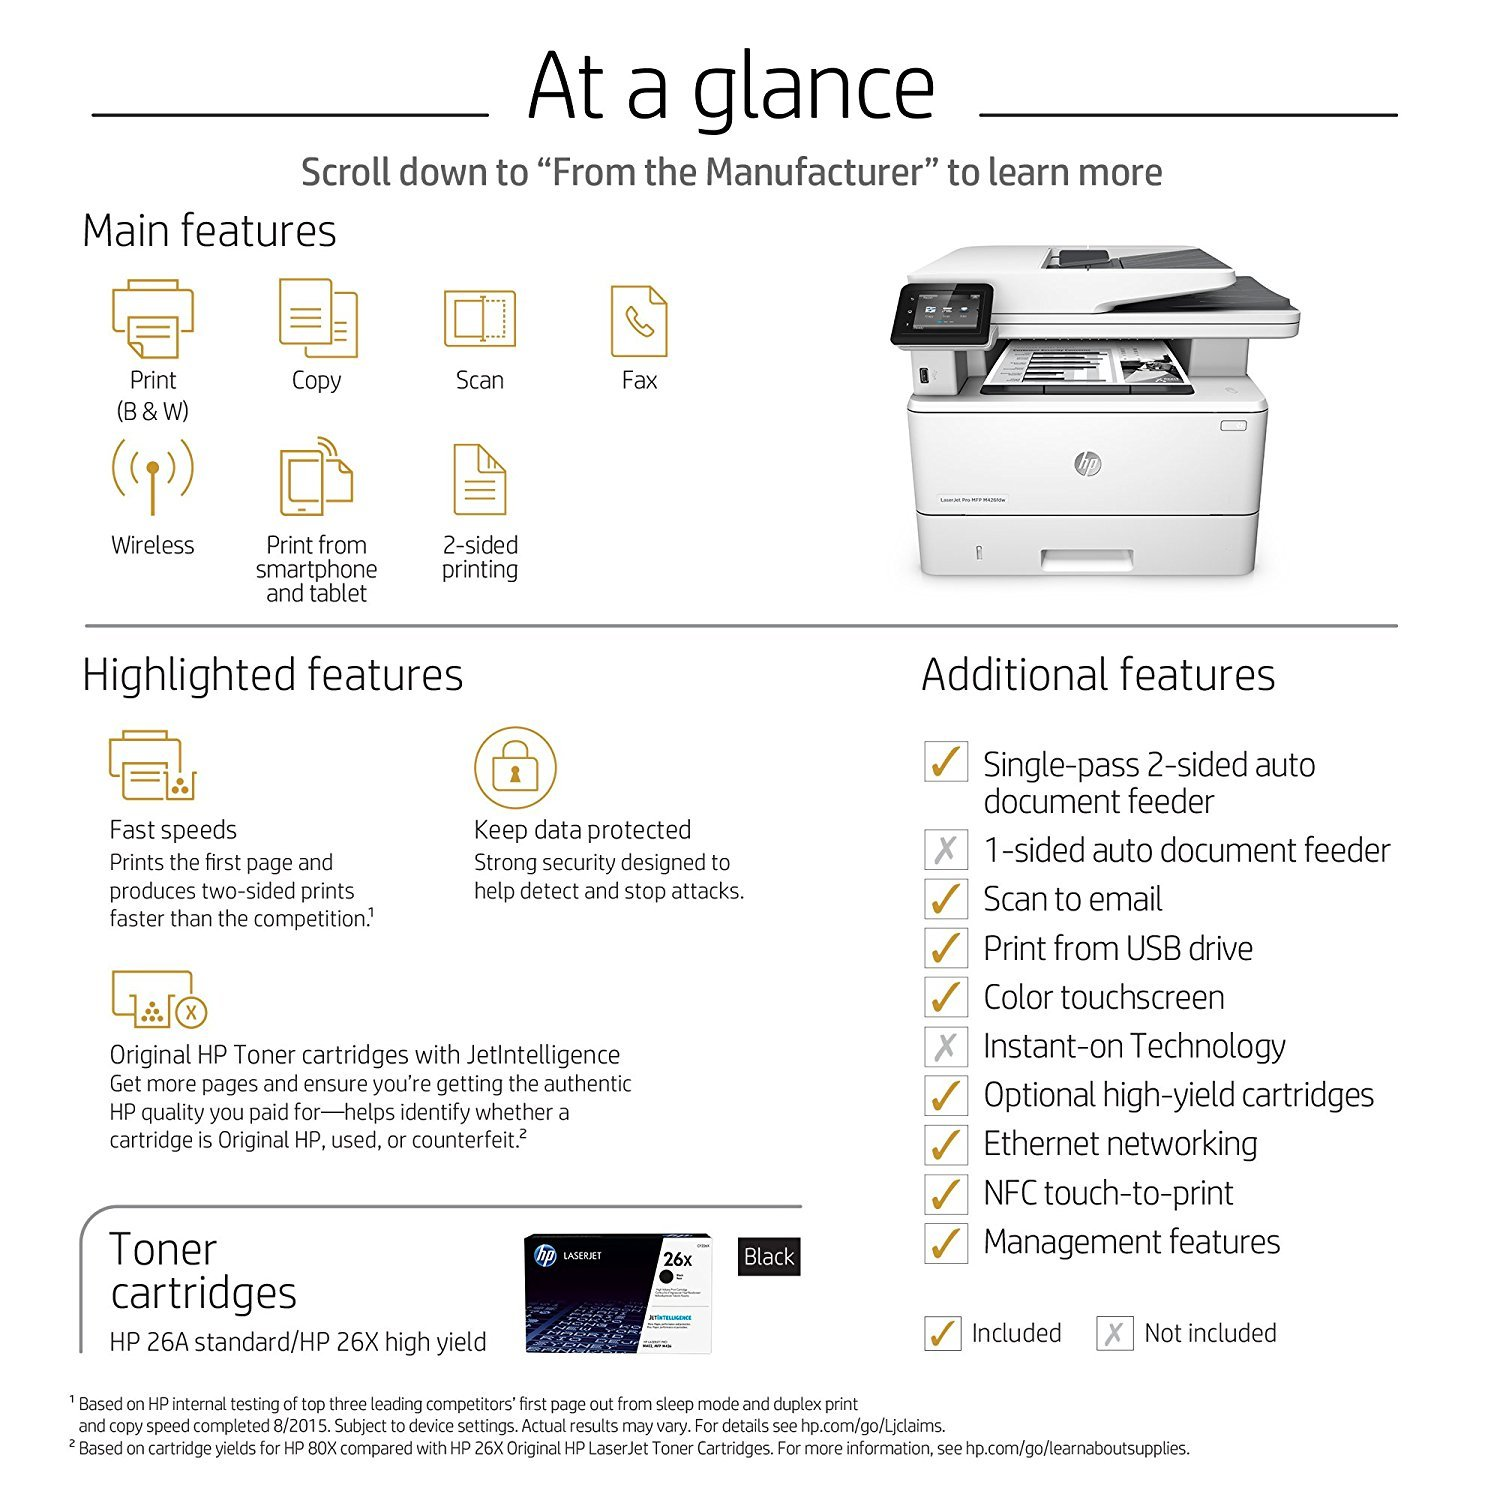 HP LaserJet Pro M426fdw All-in-One Wireless Laser Printer with Double-Sided Printing, Amazon Dash Replenishment ready (F6W15A) by HP (Image #5)